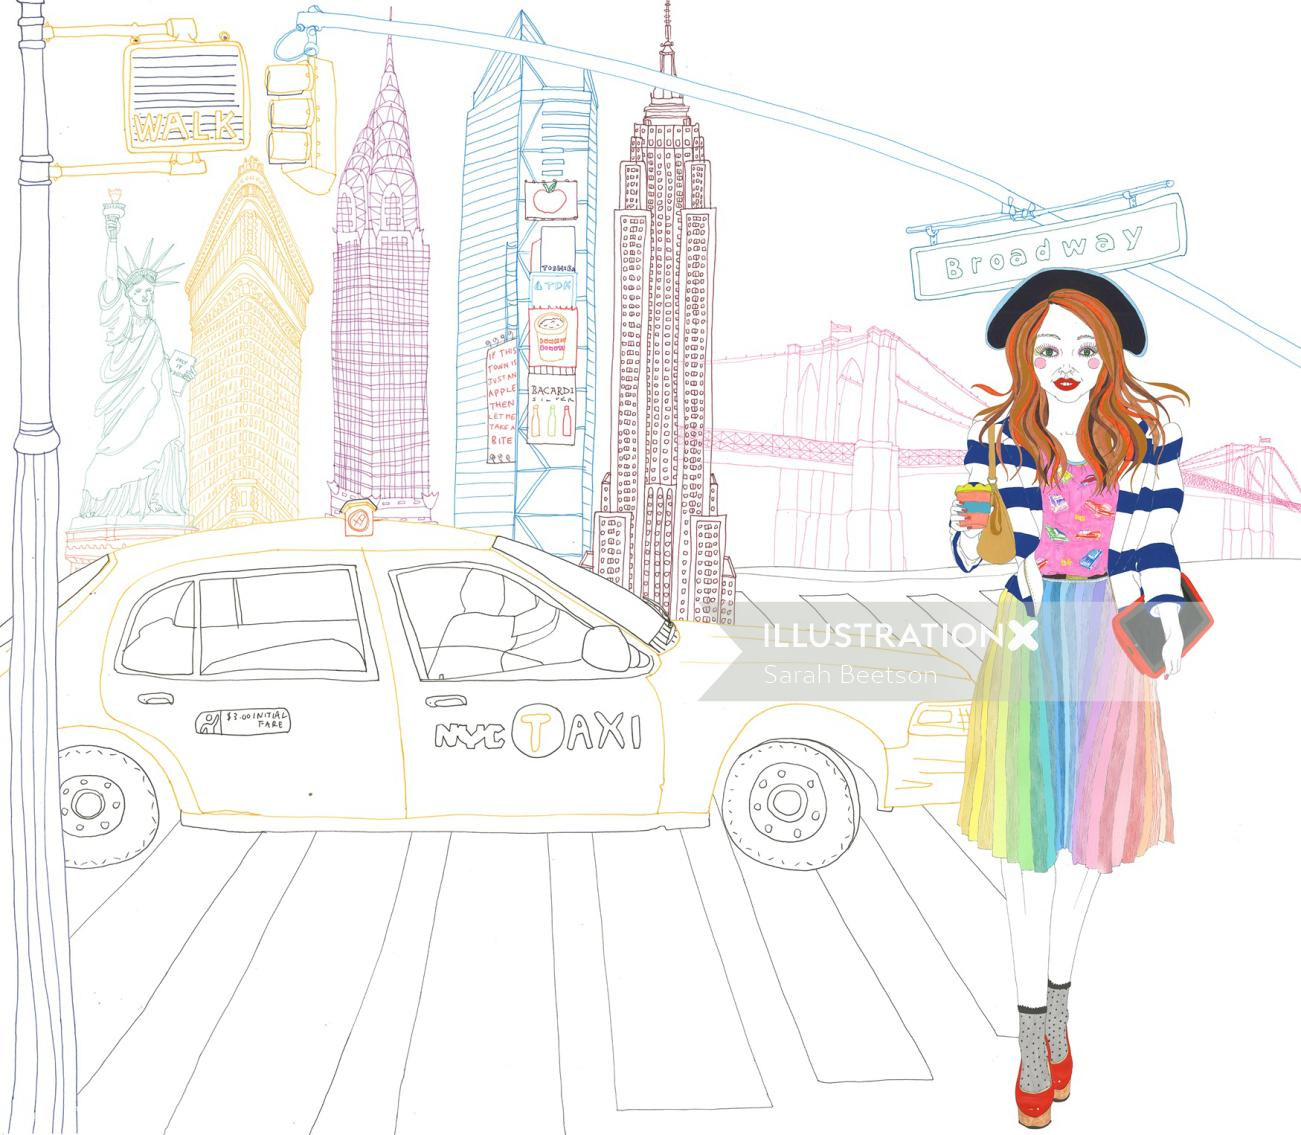 Scene New York City illustration by Sarah Beetson